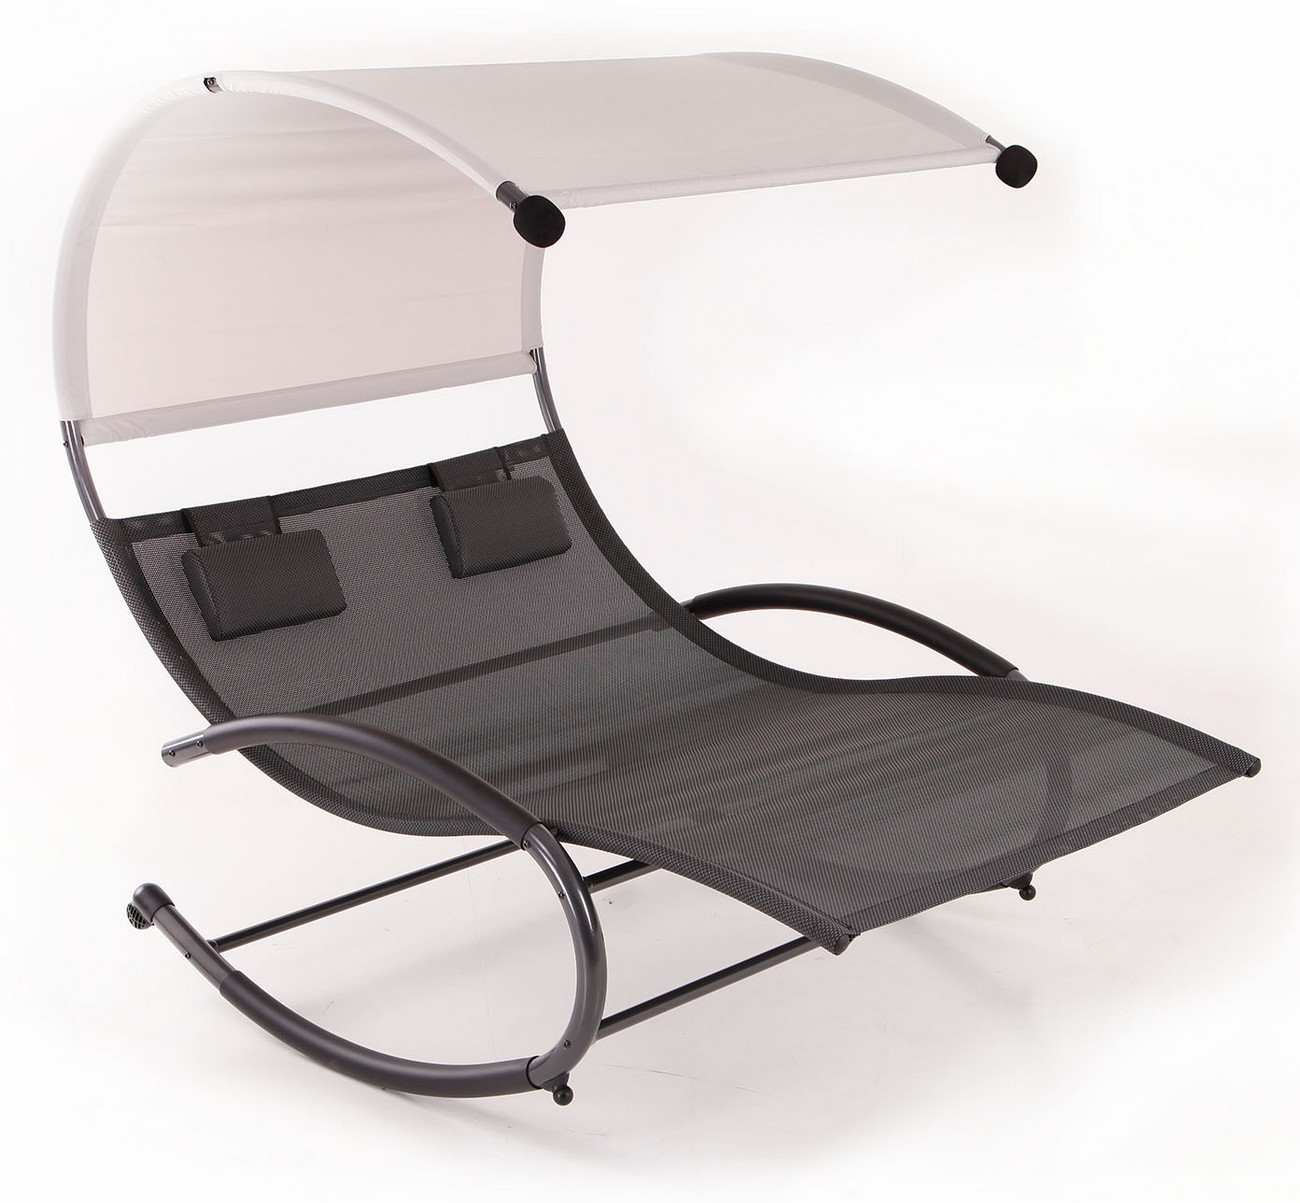 Swinging chairs outdoor furniture